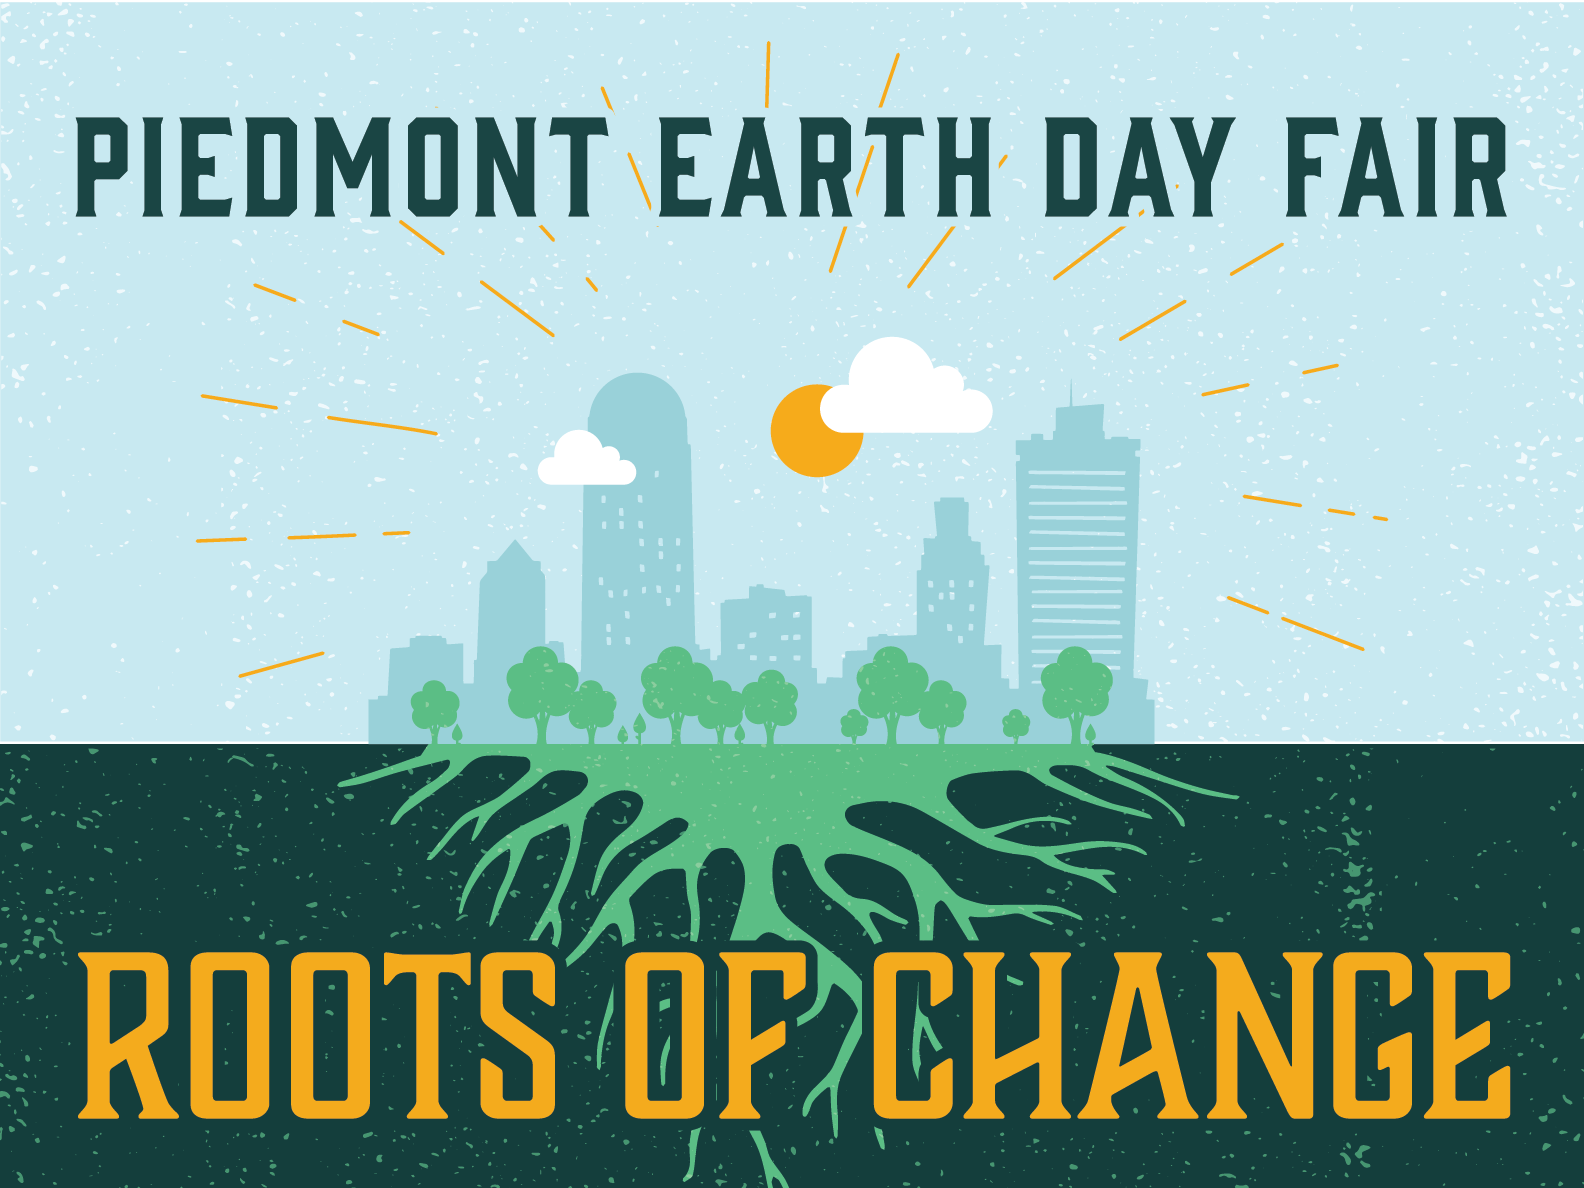 Piedmont Earth Day Fair Illustration city roots north carolina earth day typography illustration